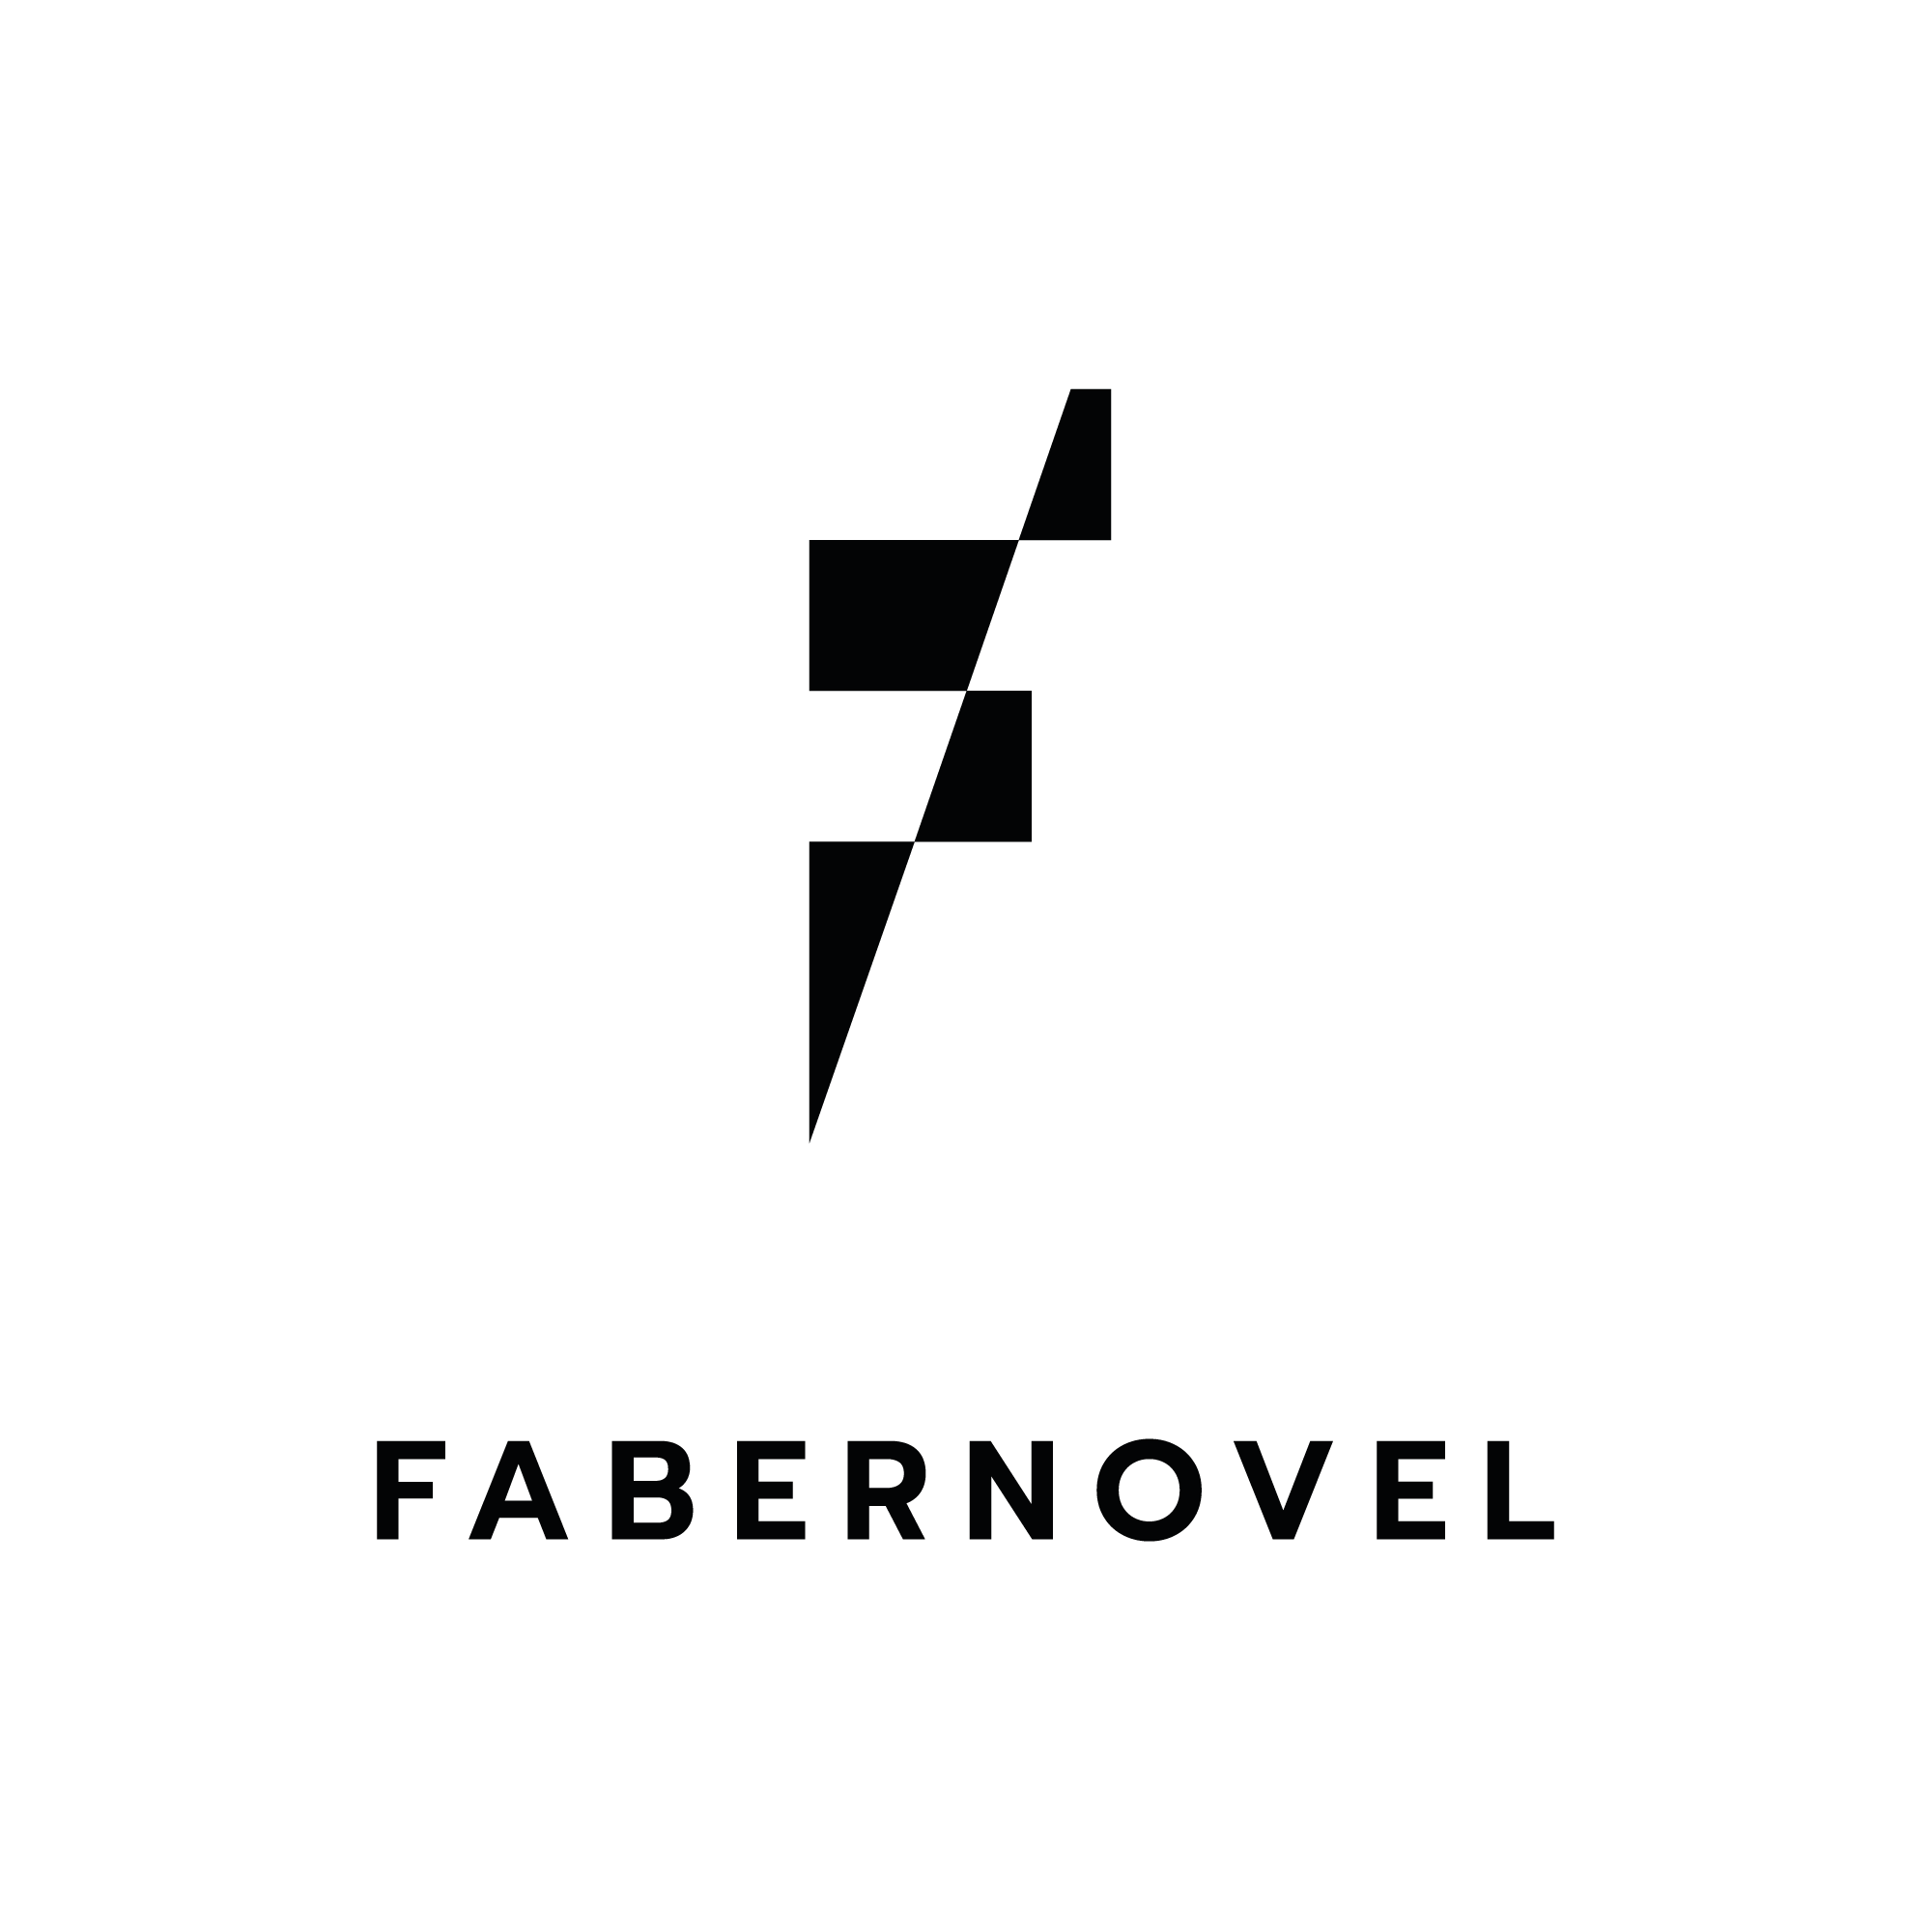 Fabernovel 019 id square%20%281%29